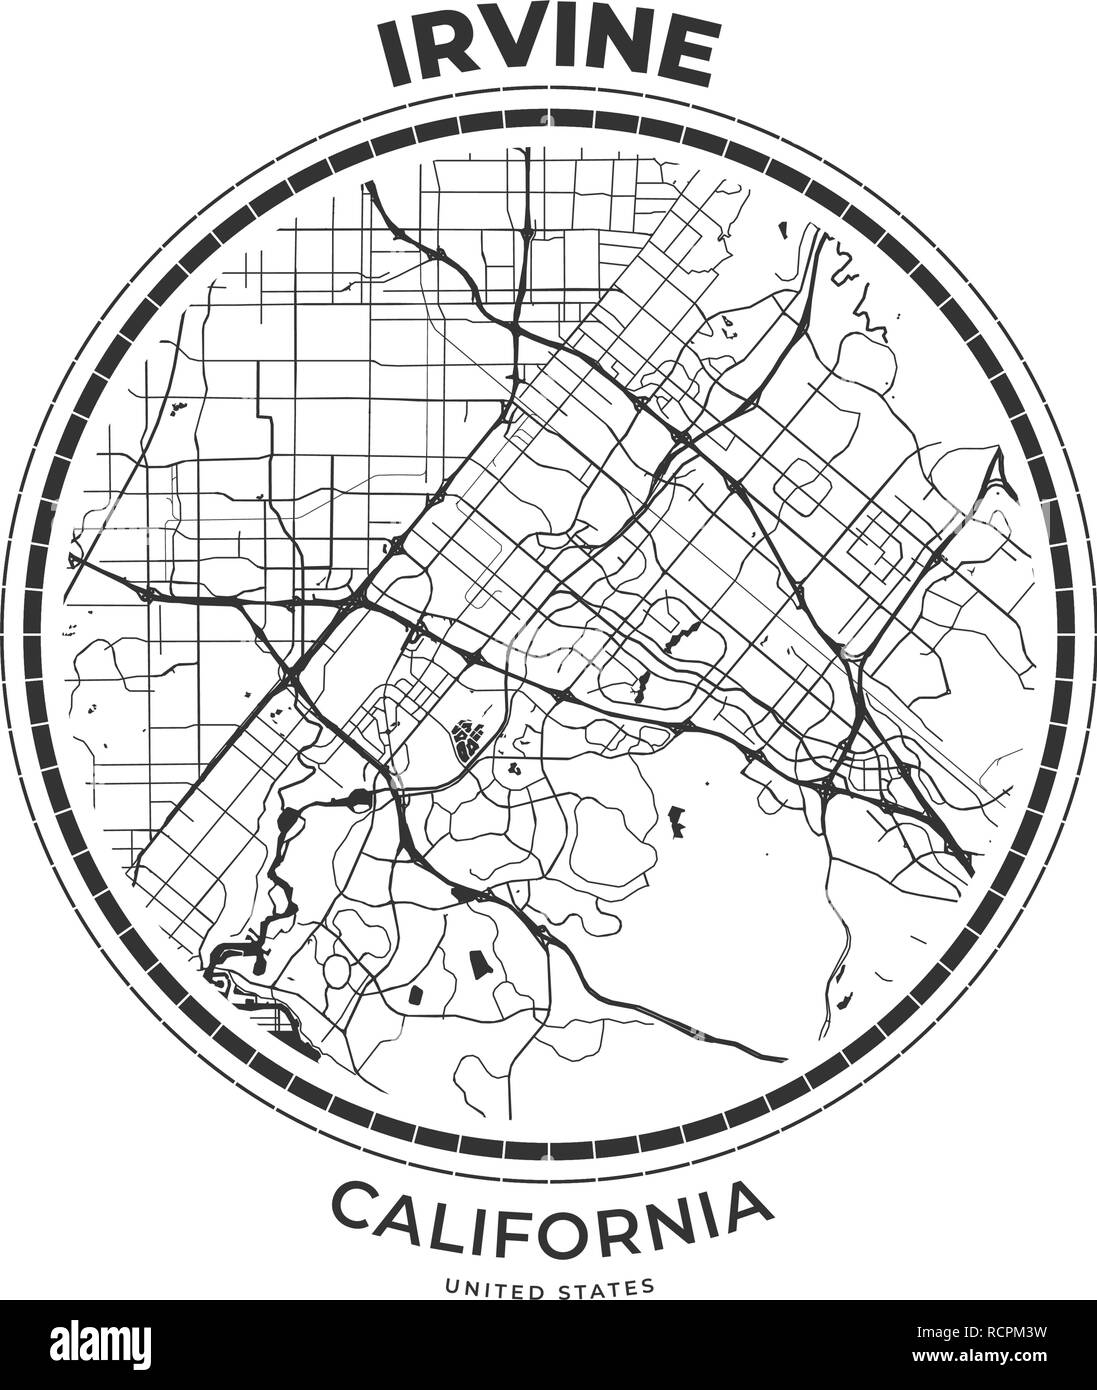 T-shirt map badge of Irvine, California. Tee shirt print ...